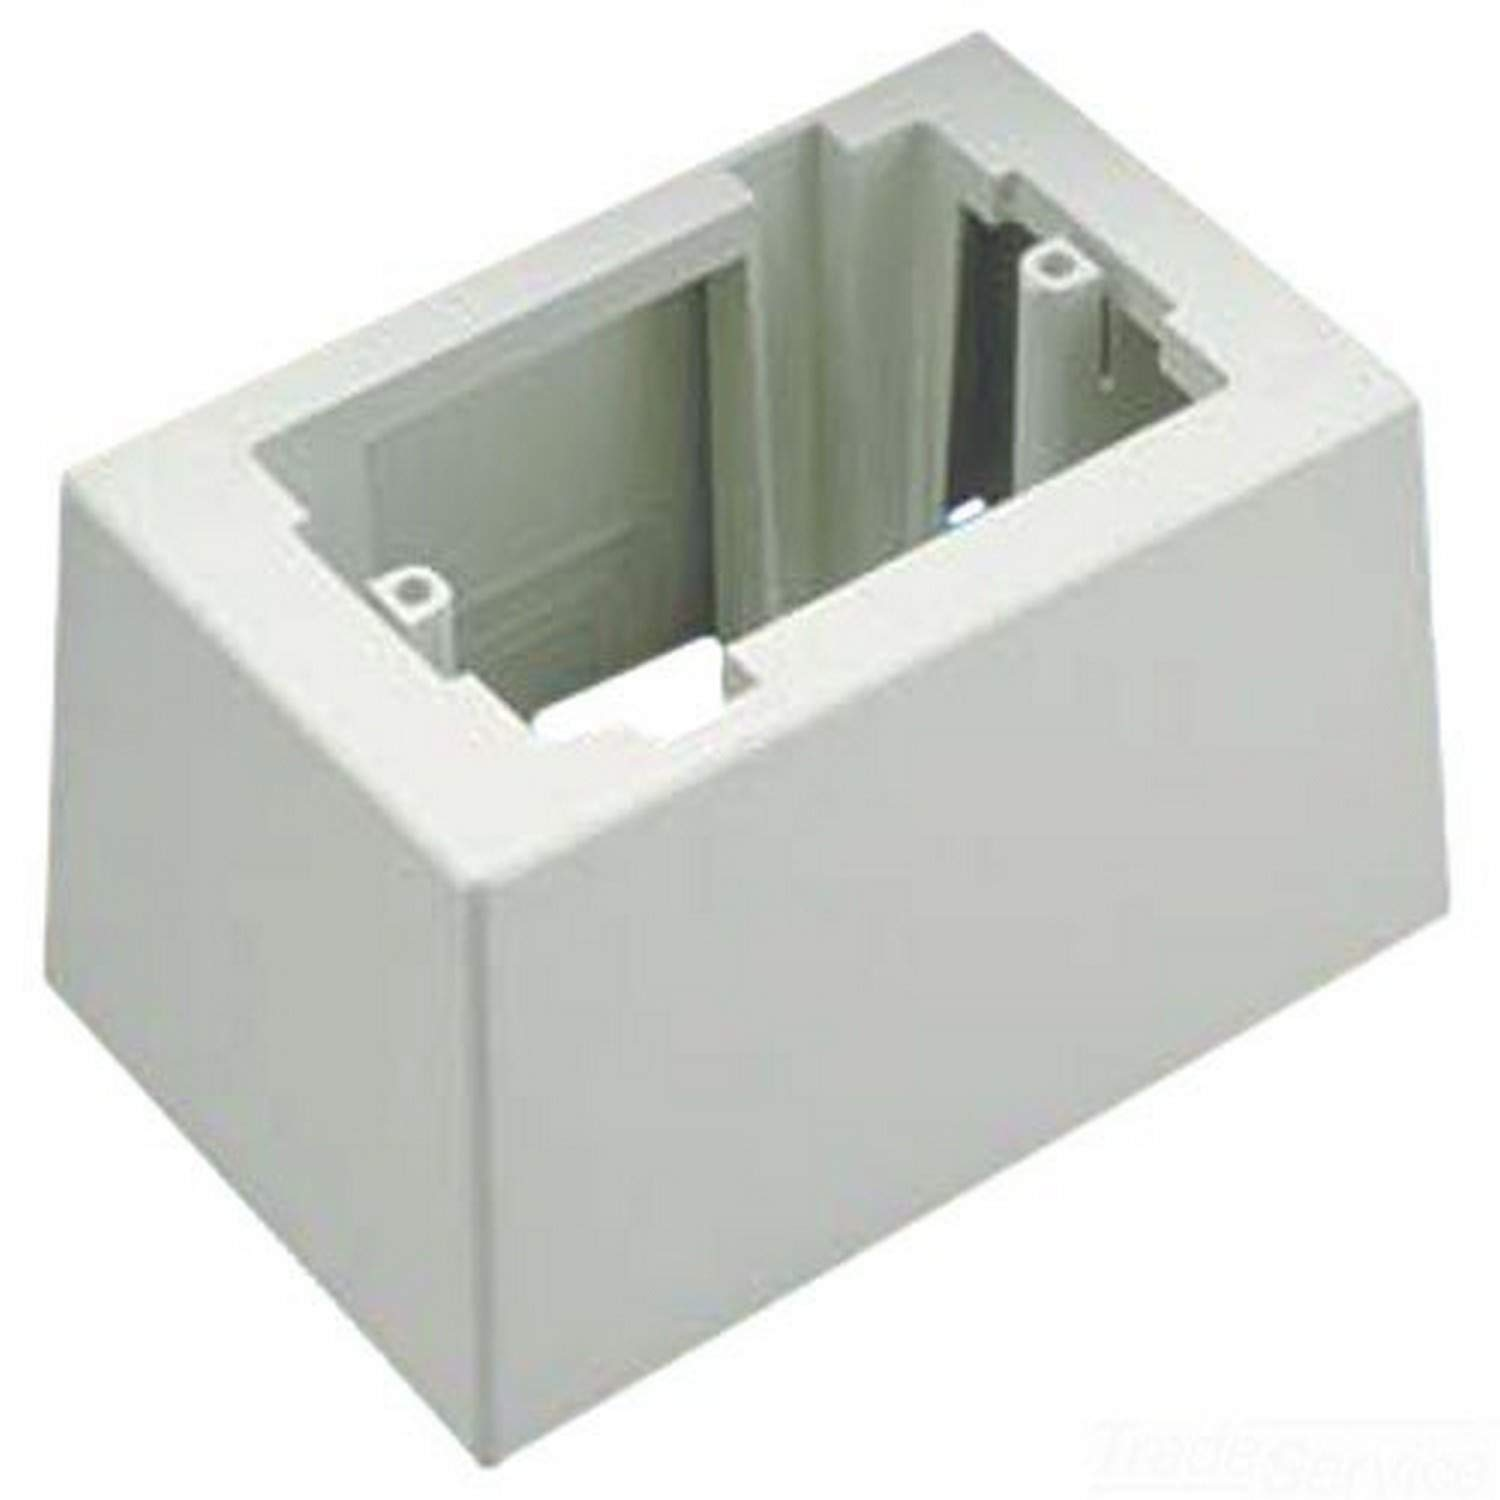 Details about  /Single Gang Wetguard Fd Extra Deep Box 000-fdbx1-y New In Box!